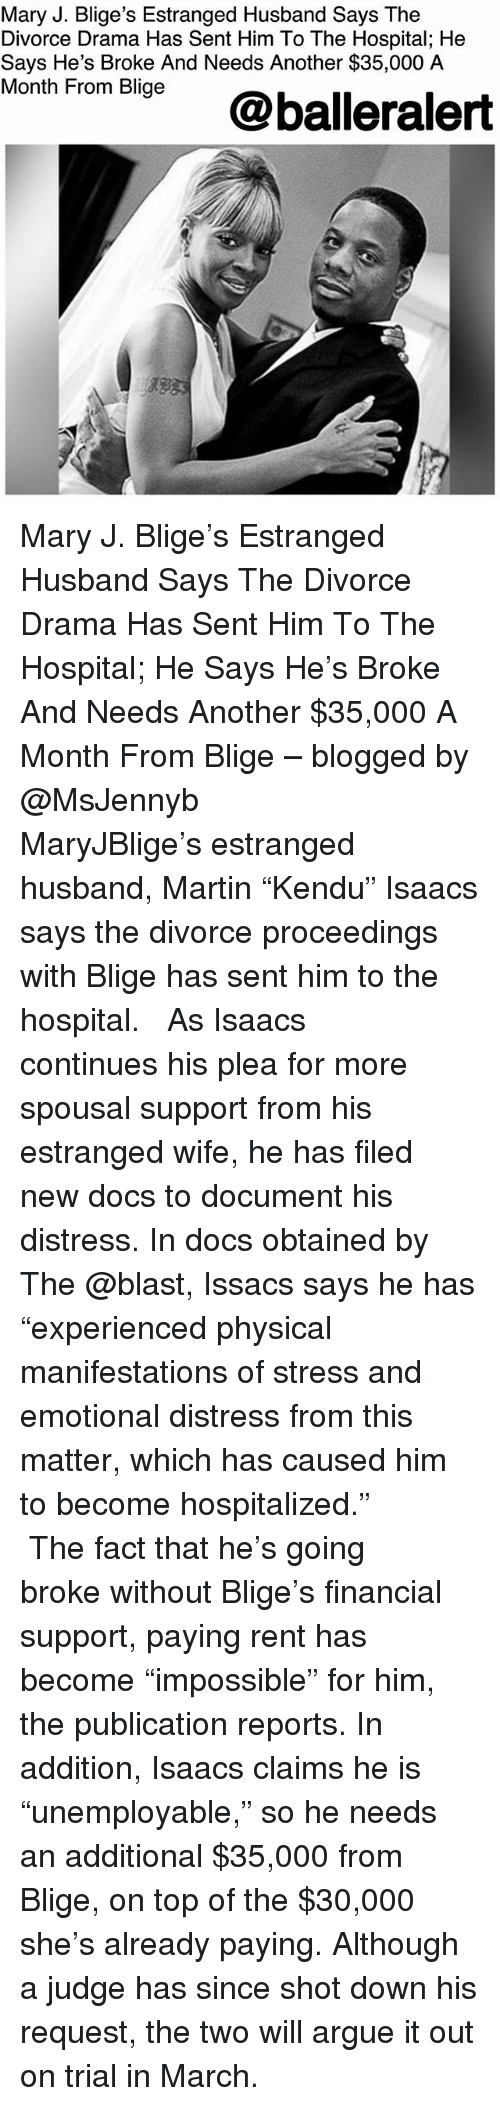 "Arguing, Martin, and Memes: Mary J. Blige's Estranged Husband Says The  Divorce Drama Has Sent Him To The Hospital; He  Says He's Broke And Needs Another $35,000 A  Month Fiom Bige@balleralert Mary J. Blige's Estranged Husband Says The Divorce Drama Has Sent Him To The Hospital; He Says He's Broke And Needs Another $35,000 A Month From Blige – blogged by @MsJennyb ⠀⠀⠀⠀⠀⠀⠀ ⠀⠀⠀⠀⠀⠀⠀ MaryJBlige's estranged husband, Martin ""Kendu"" Isaacs says the divorce proceedings with Blige has sent him to the hospital. ⠀⠀⠀⠀⠀⠀⠀ ⠀⠀⠀⠀⠀⠀⠀ As Isaacs continues his plea for more spousal support from his estranged wife, he has filed new docs to document his distress. In docs obtained by The @blast, Issacs says he has ""experienced physical manifestations of stress and emotional distress from this matter, which has caused him to become hospitalized."" ⠀⠀⠀⠀⠀⠀⠀ ⠀⠀⠀⠀⠀⠀⠀ The fact that he's going broke without Blige's financial support, paying rent has become ""impossible"" for him, the publication reports. In addition, Isaacs claims he is ""unemployable,"" so he needs an additional $35,000 from Blige, on top of the $30,000 she's already paying. Although a judge has since shot down his request, the two will argue it out on trial in March."